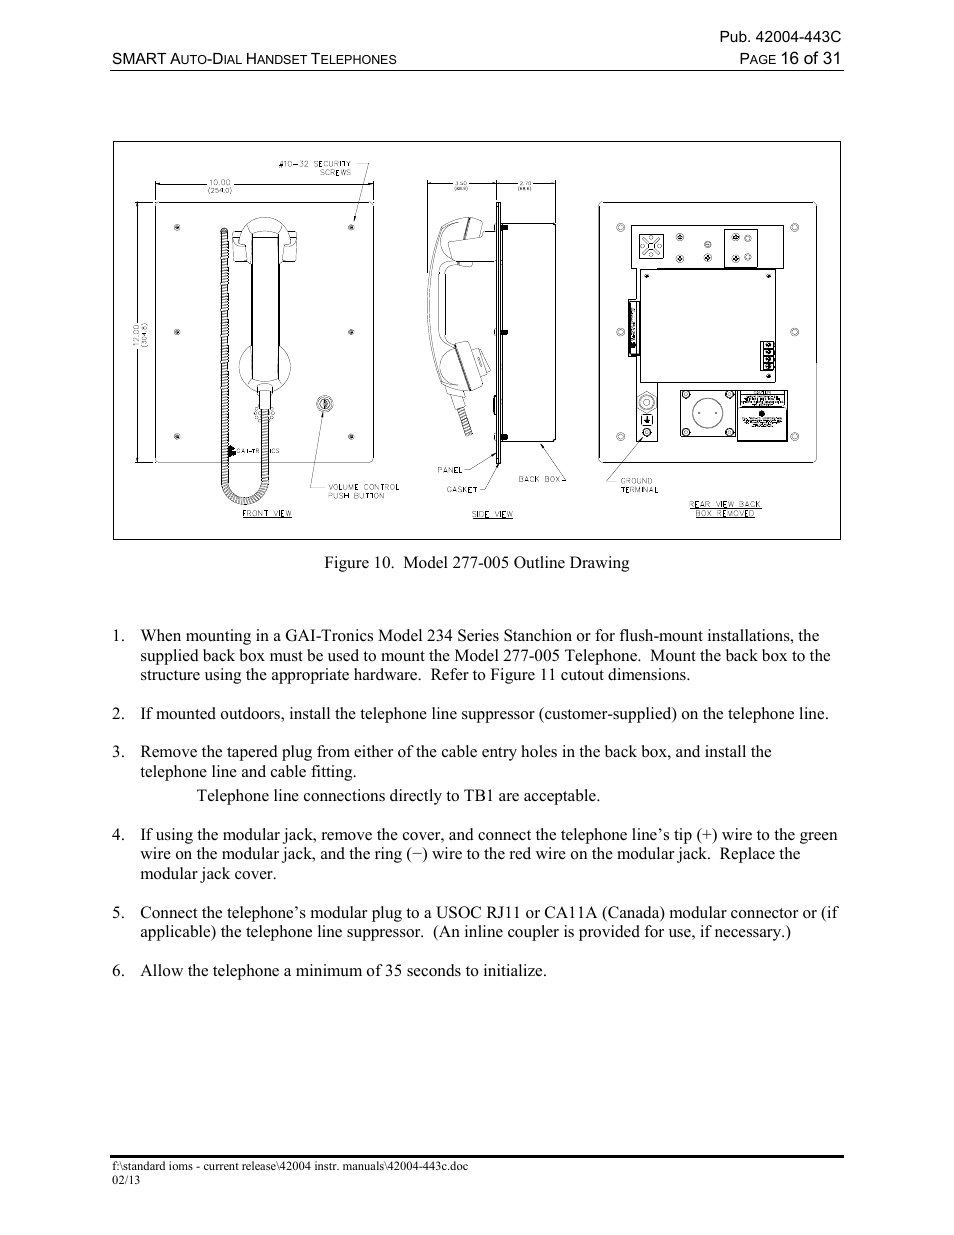 Model 277 005 Stanchion Or Flush Mount Applications Gai Tronics Usoc Cable Wiring Diagram 227 Smart Auto Dial Handset Telephones User Manual Page 18 34